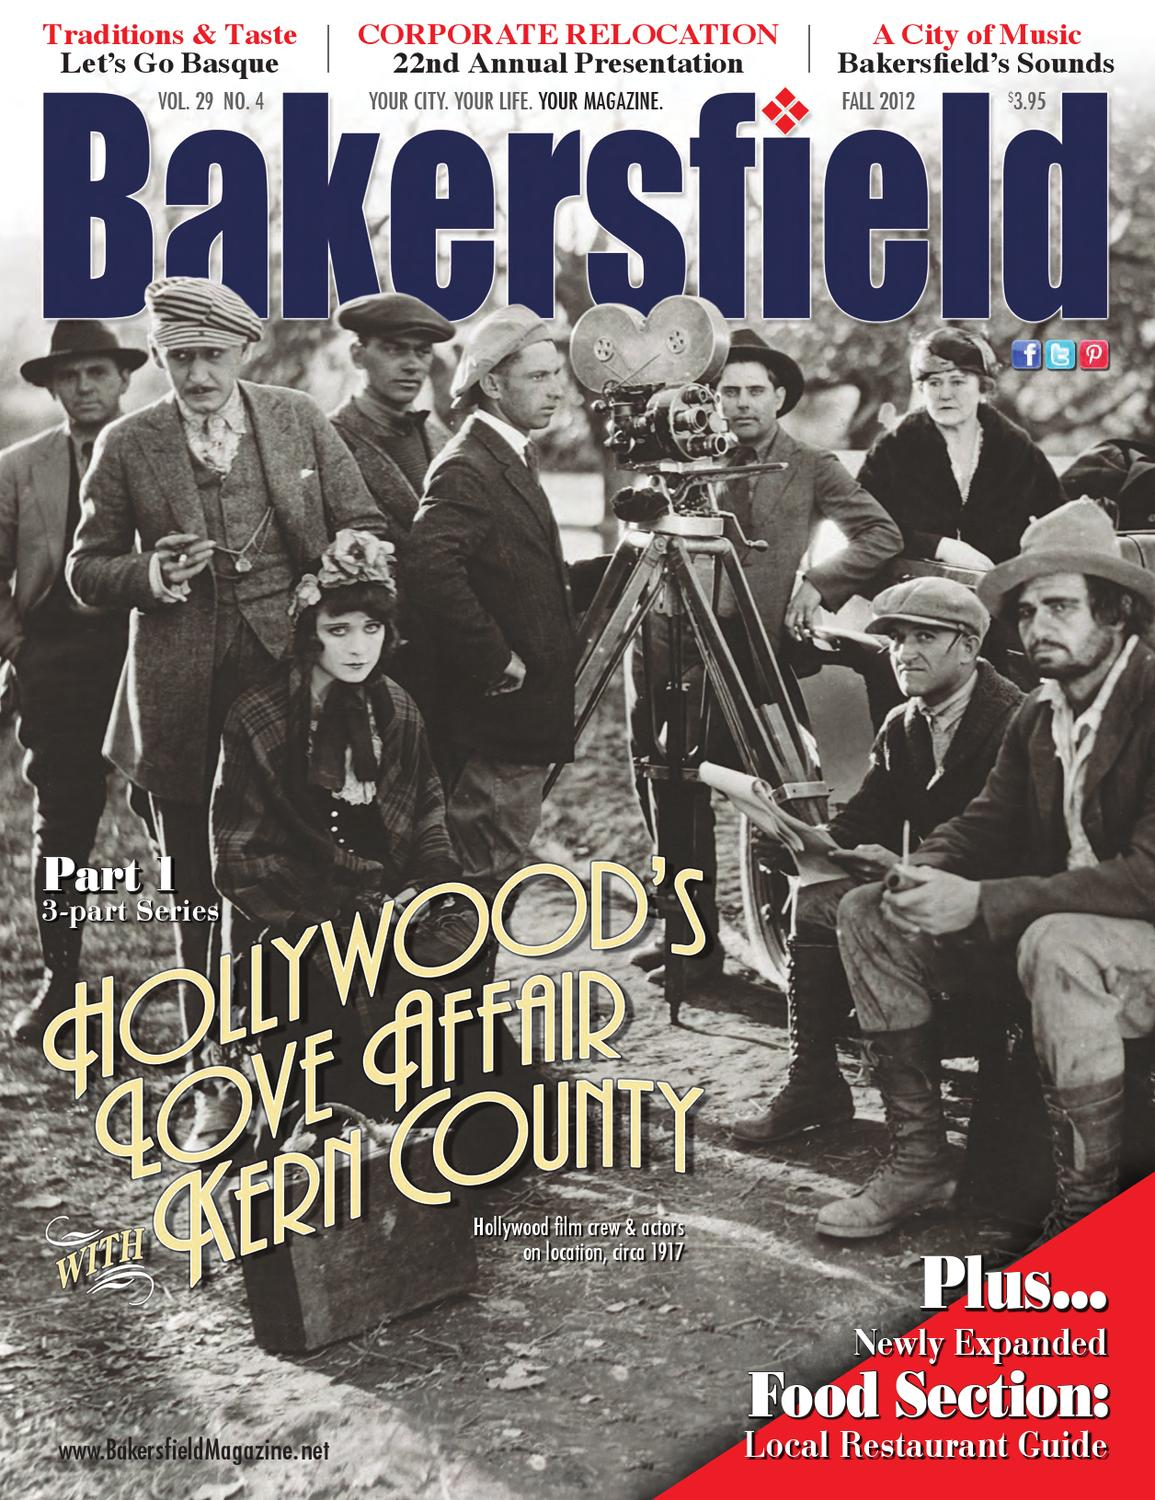 Bakersfield magazine 29 4 corporate relocation by for Bakersfield home magazine